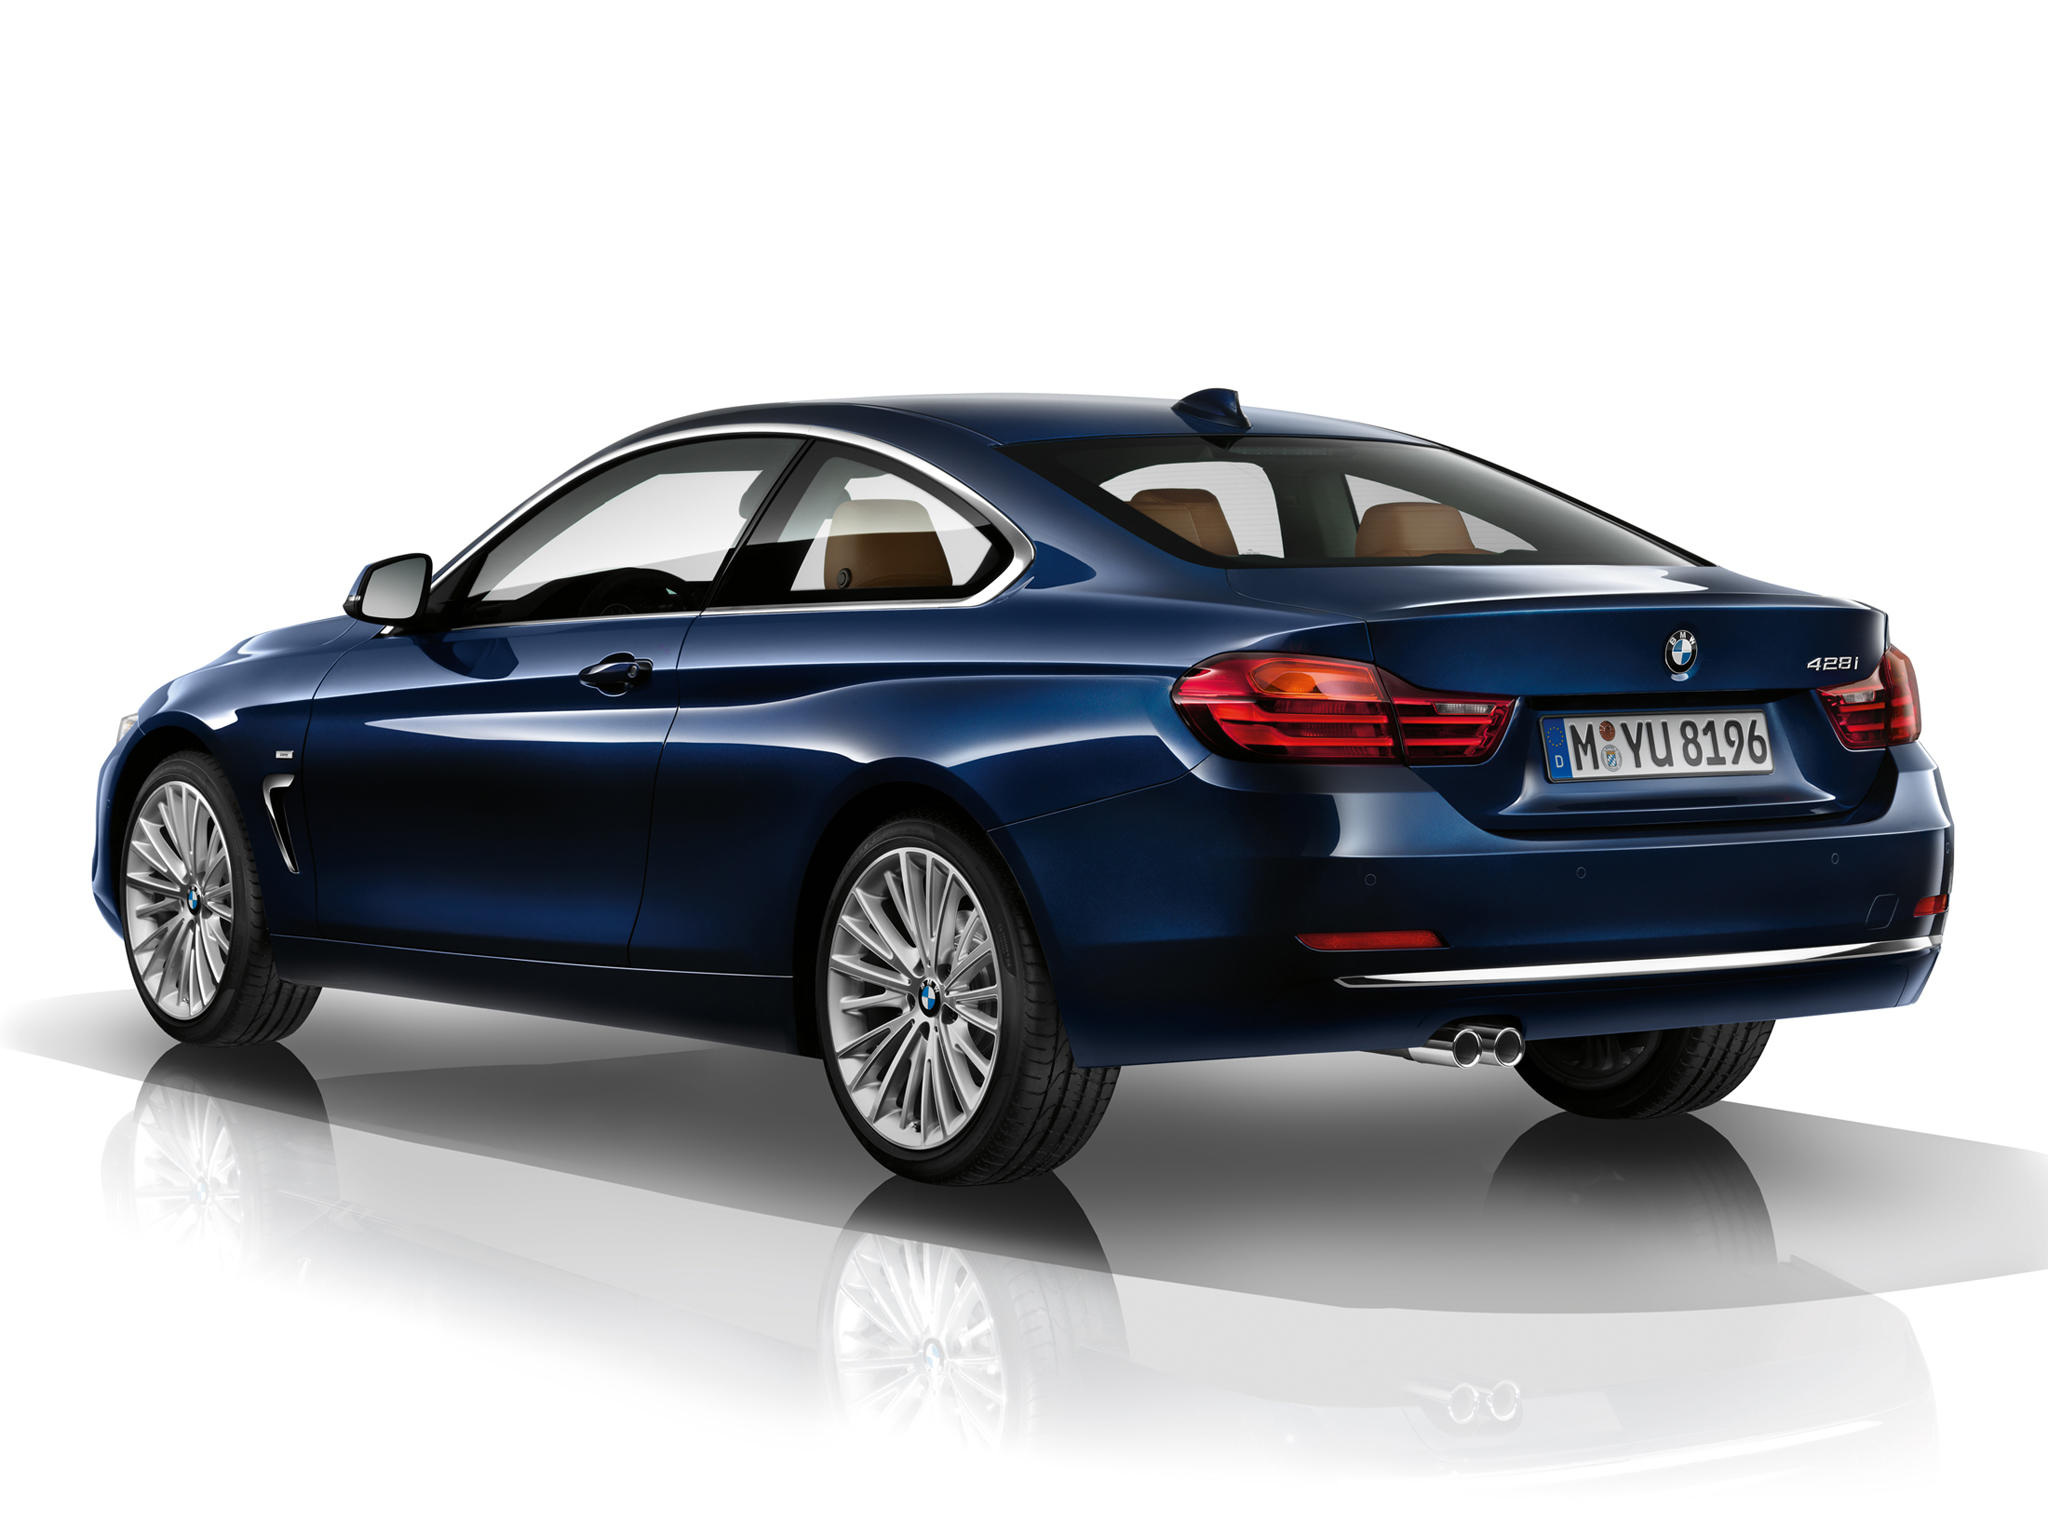 BMW 4 series 428i 2013 photo - 3